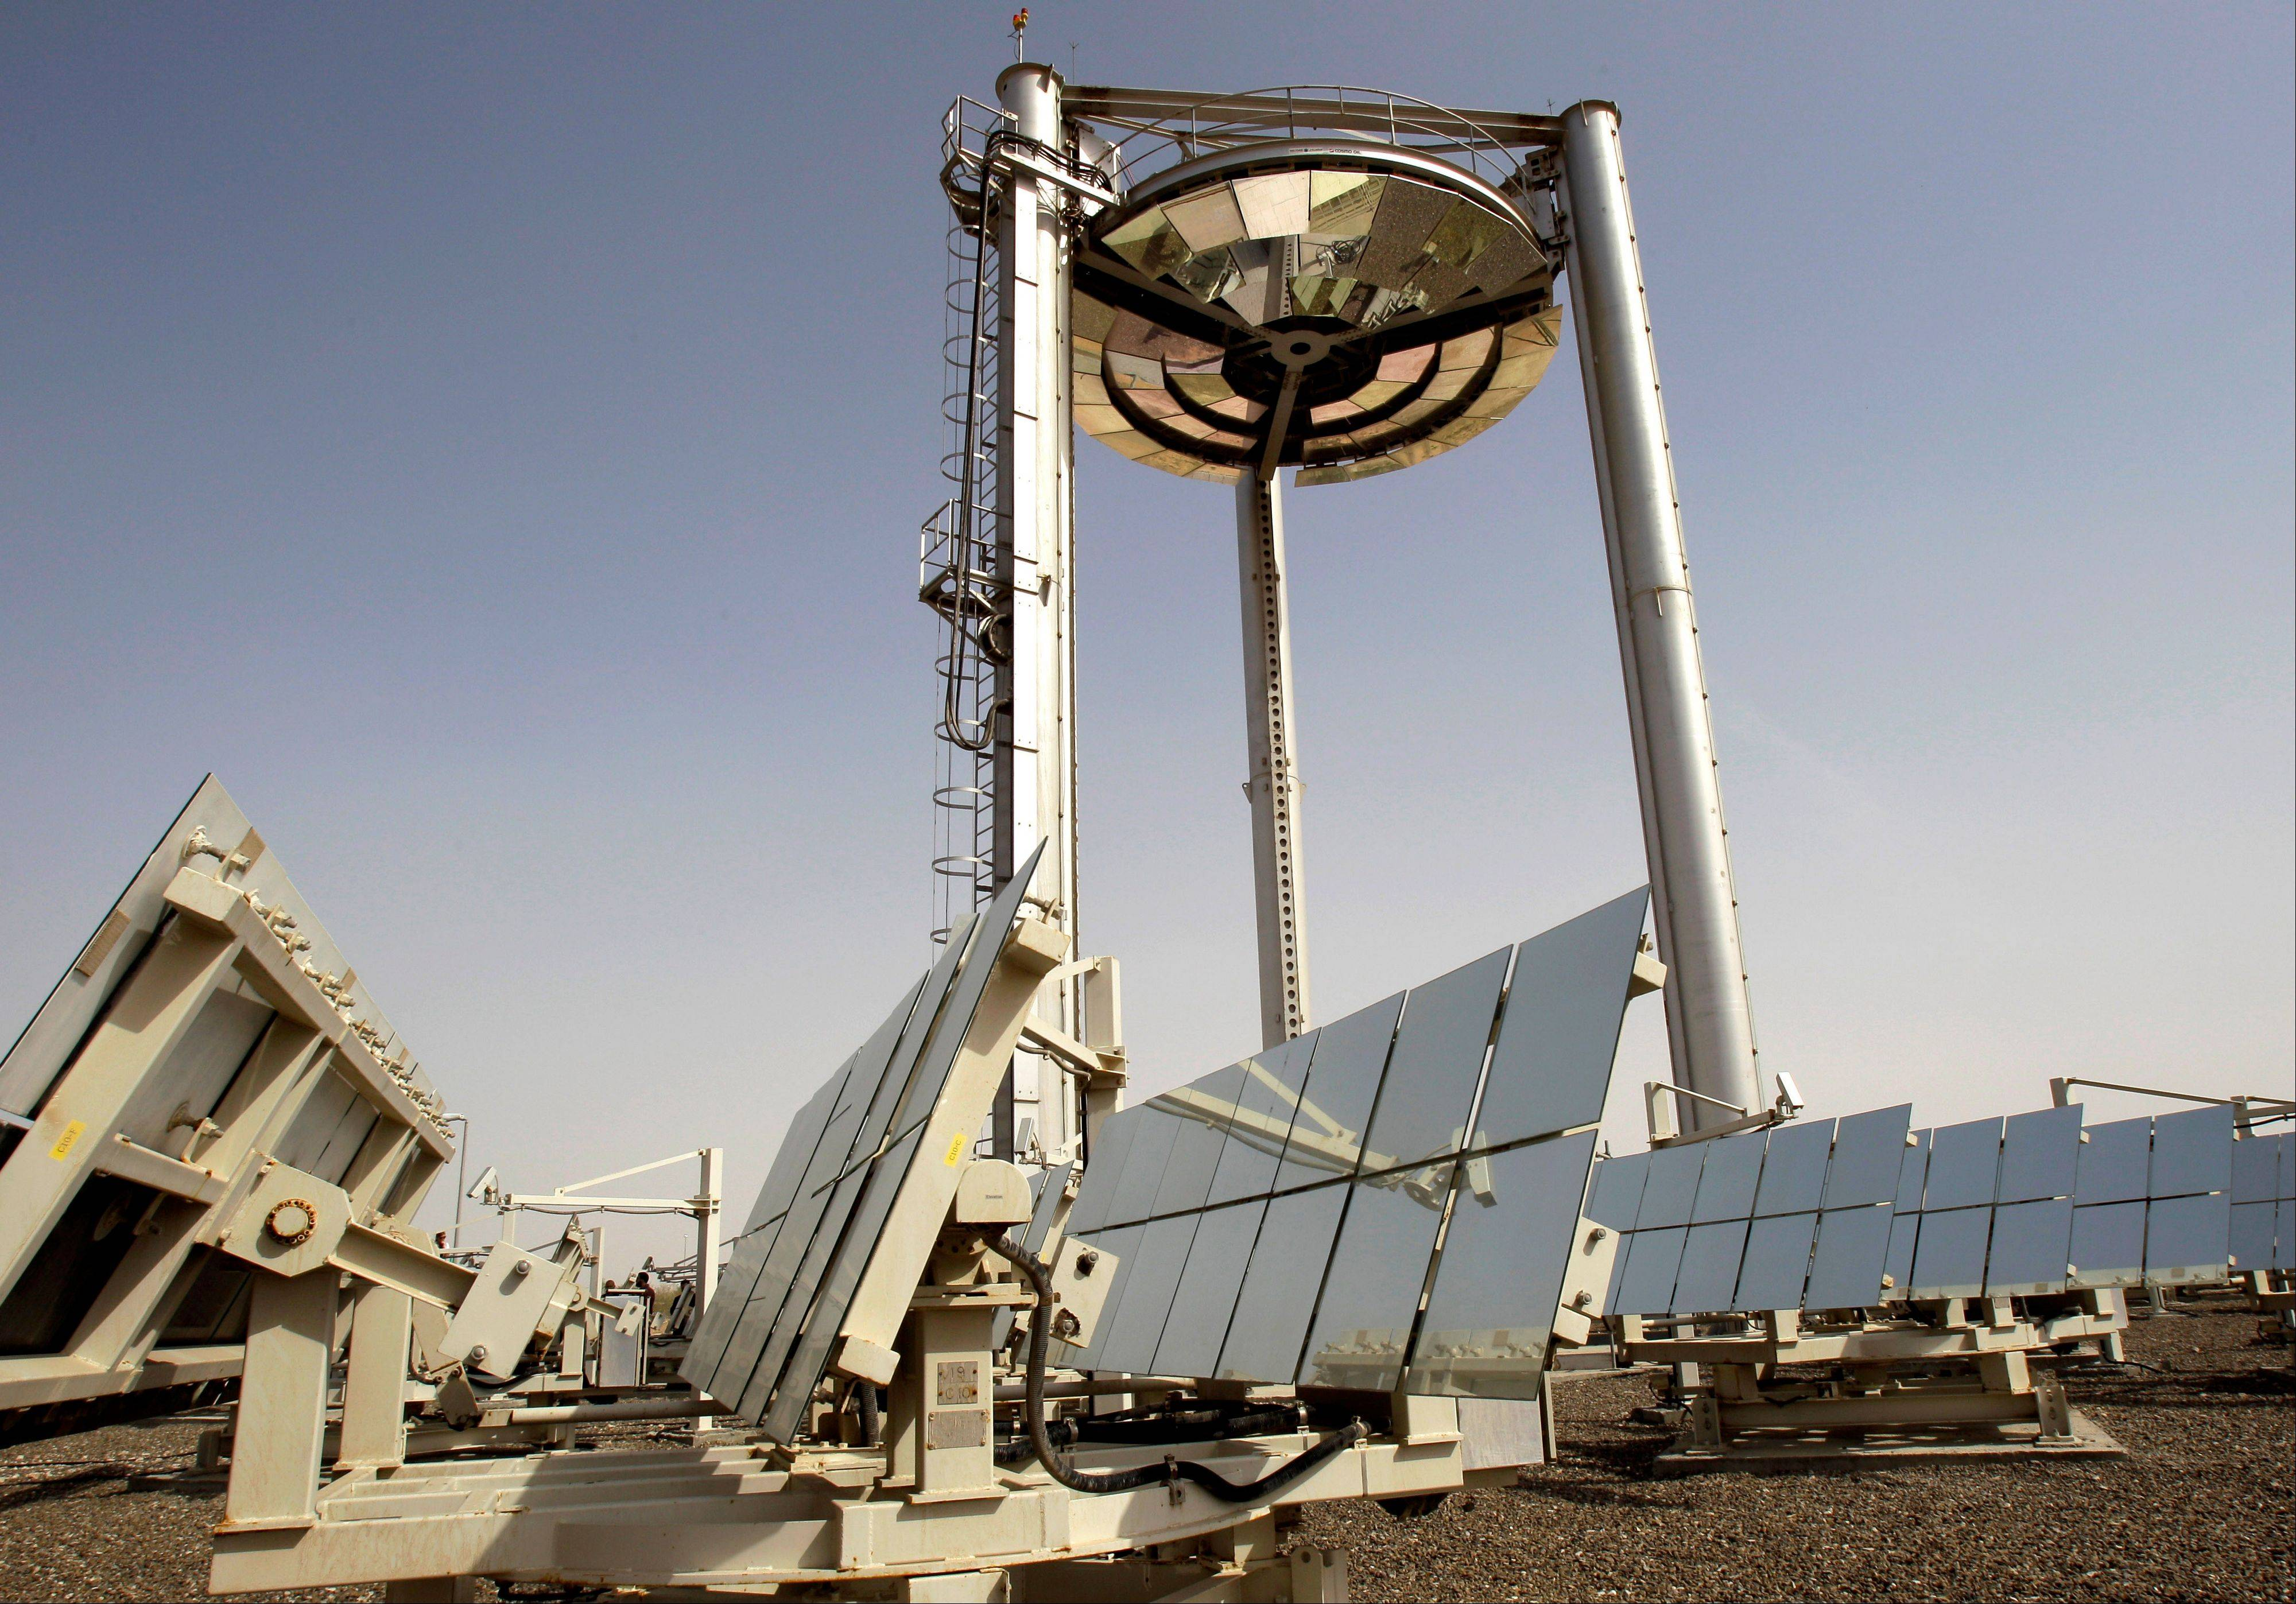 An experimental solar power installation was constructed in Masdar City in Abu Dhabi, United Arab Emirates.